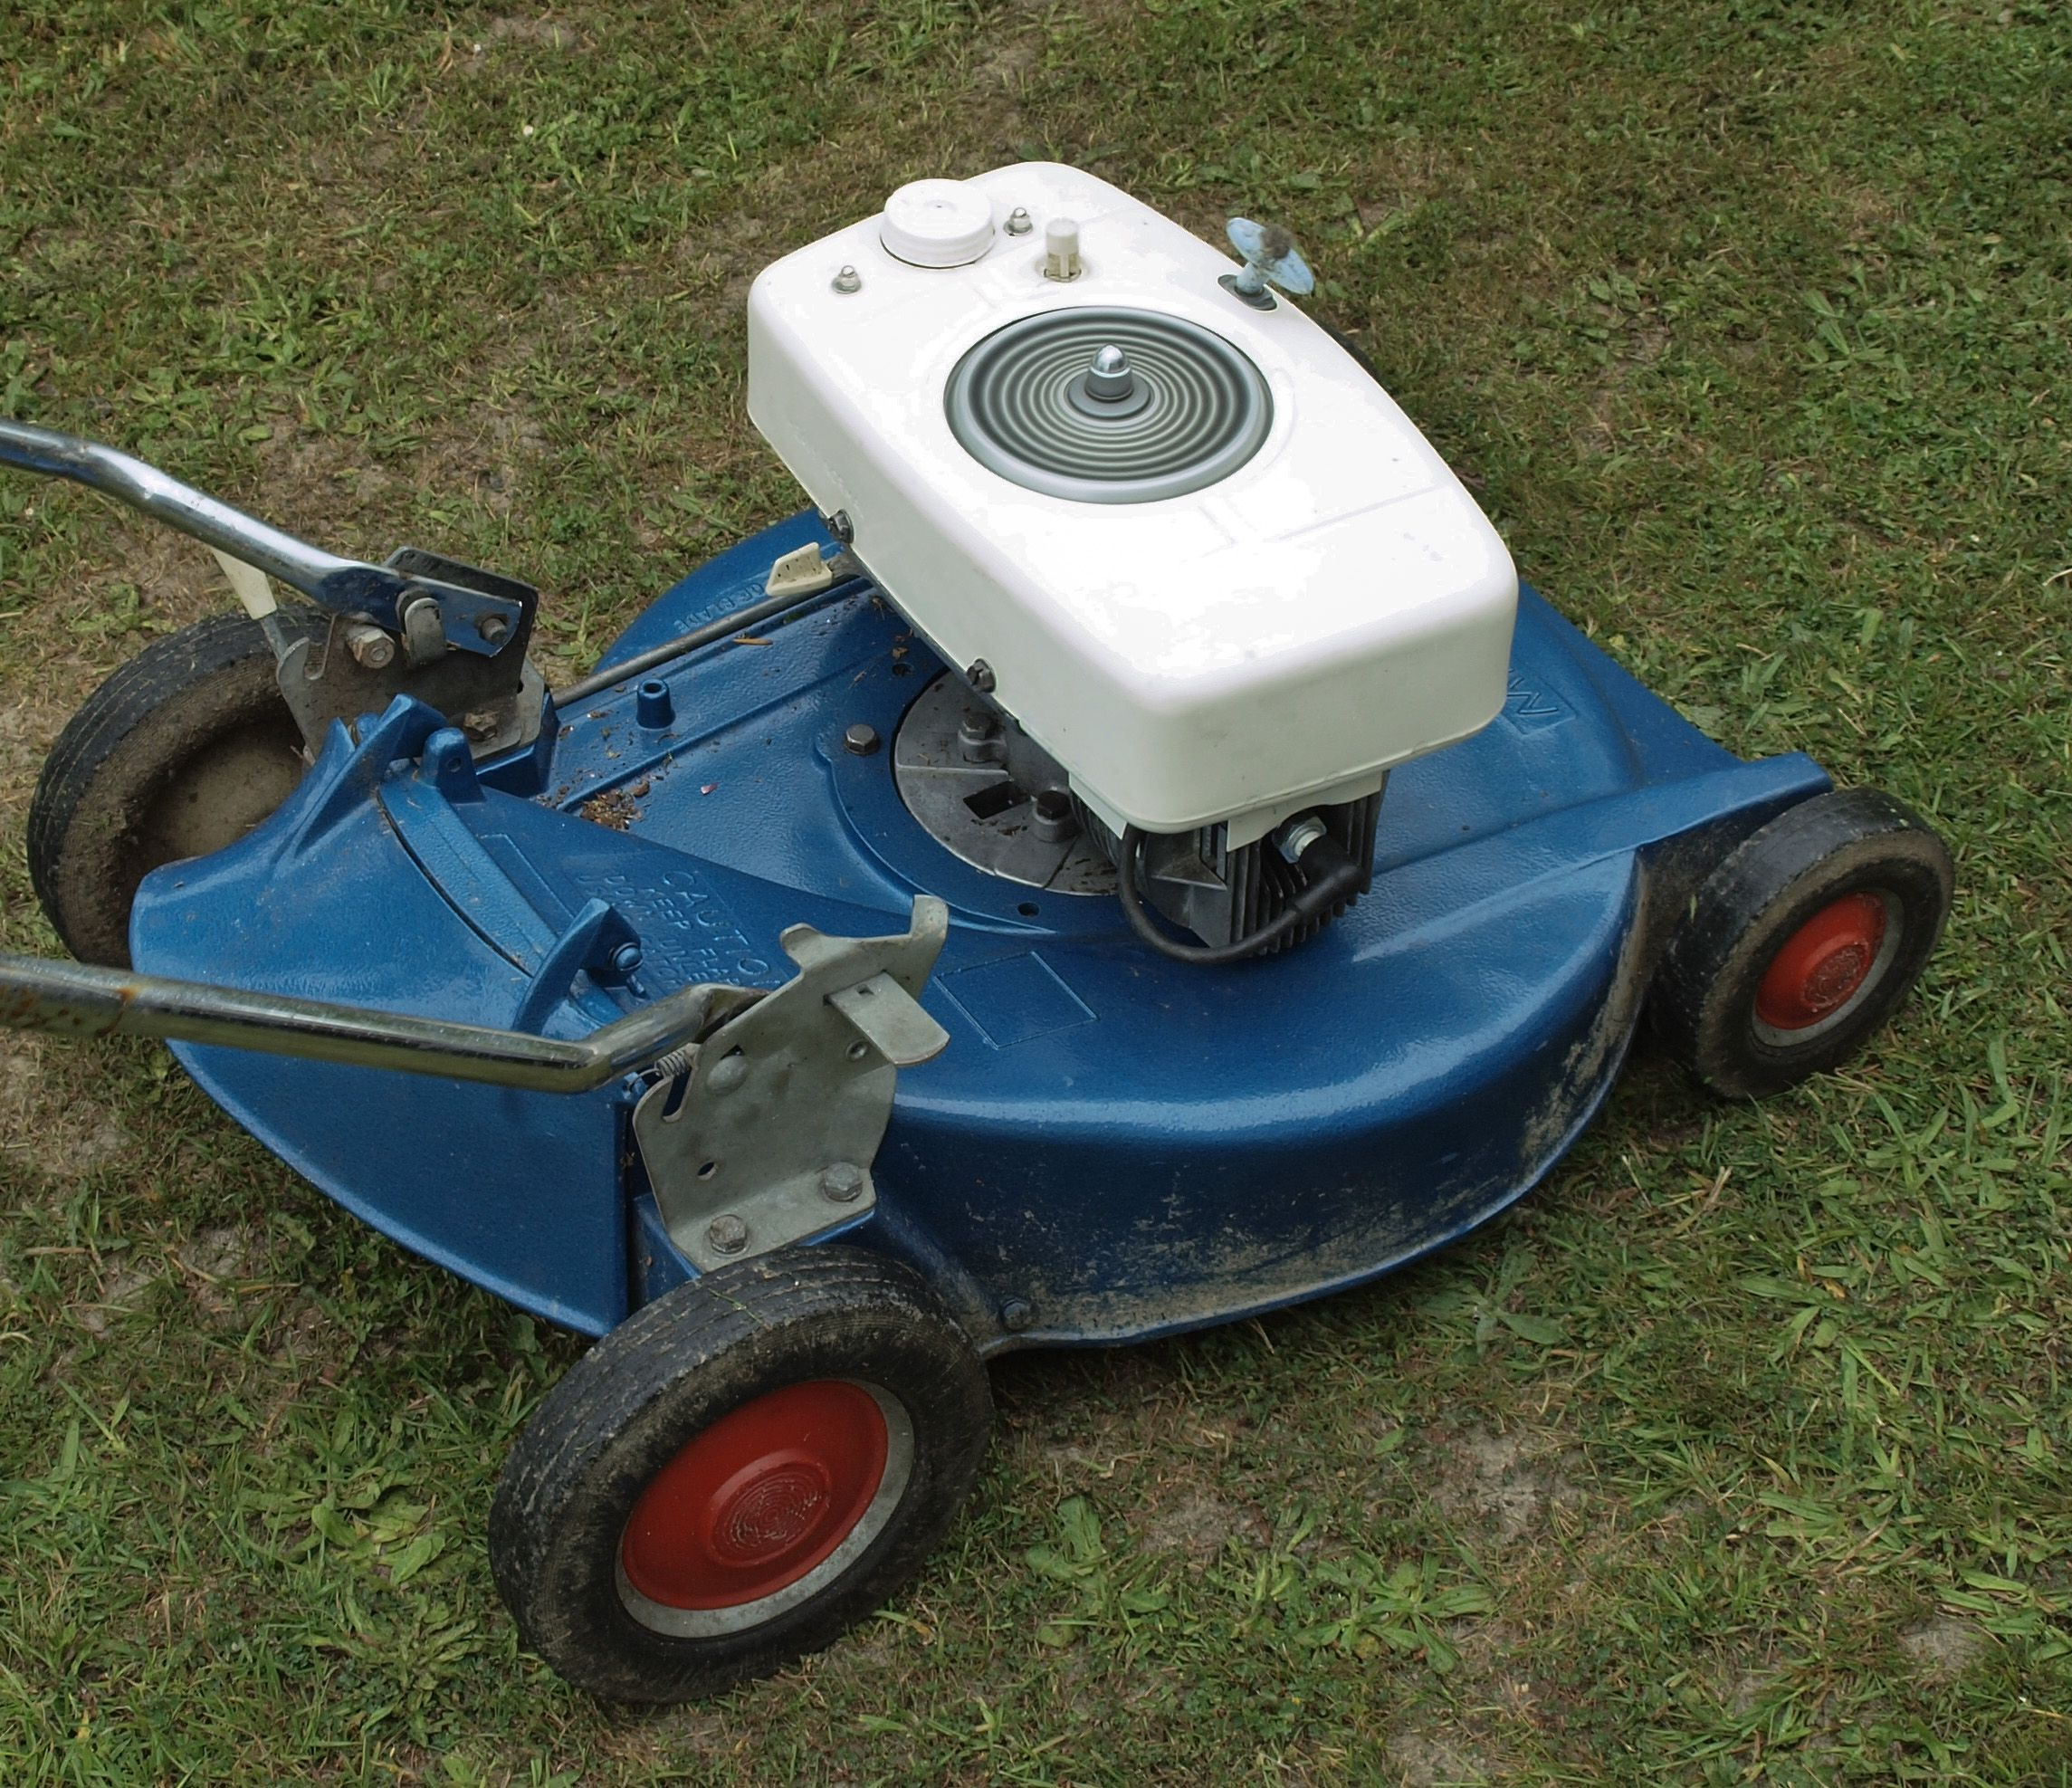 Masport Lawn Mower Google Search An Old Mower Compare This To Present Day Masport Lawn Mowers Lawn Mower Mower Push Lawn Mower